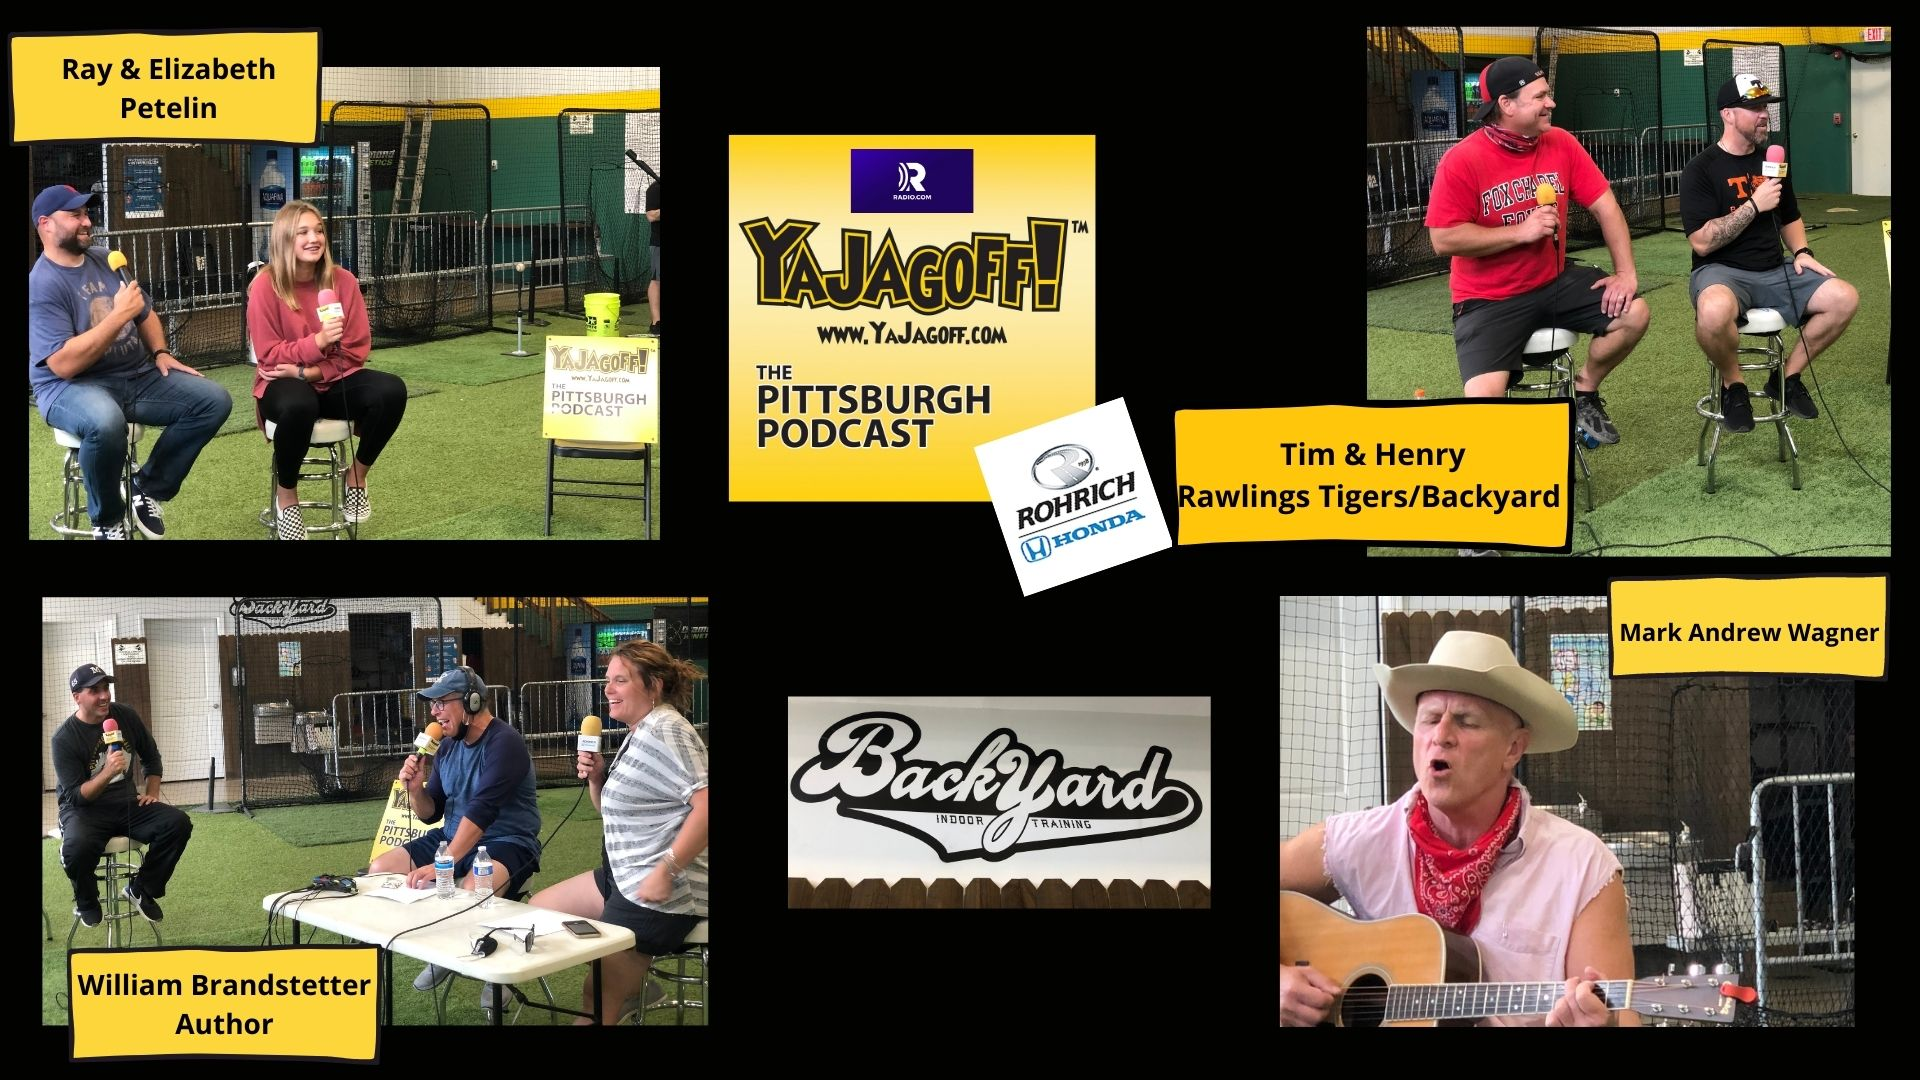 YaJagoff Podcast from Rawlings Tigers